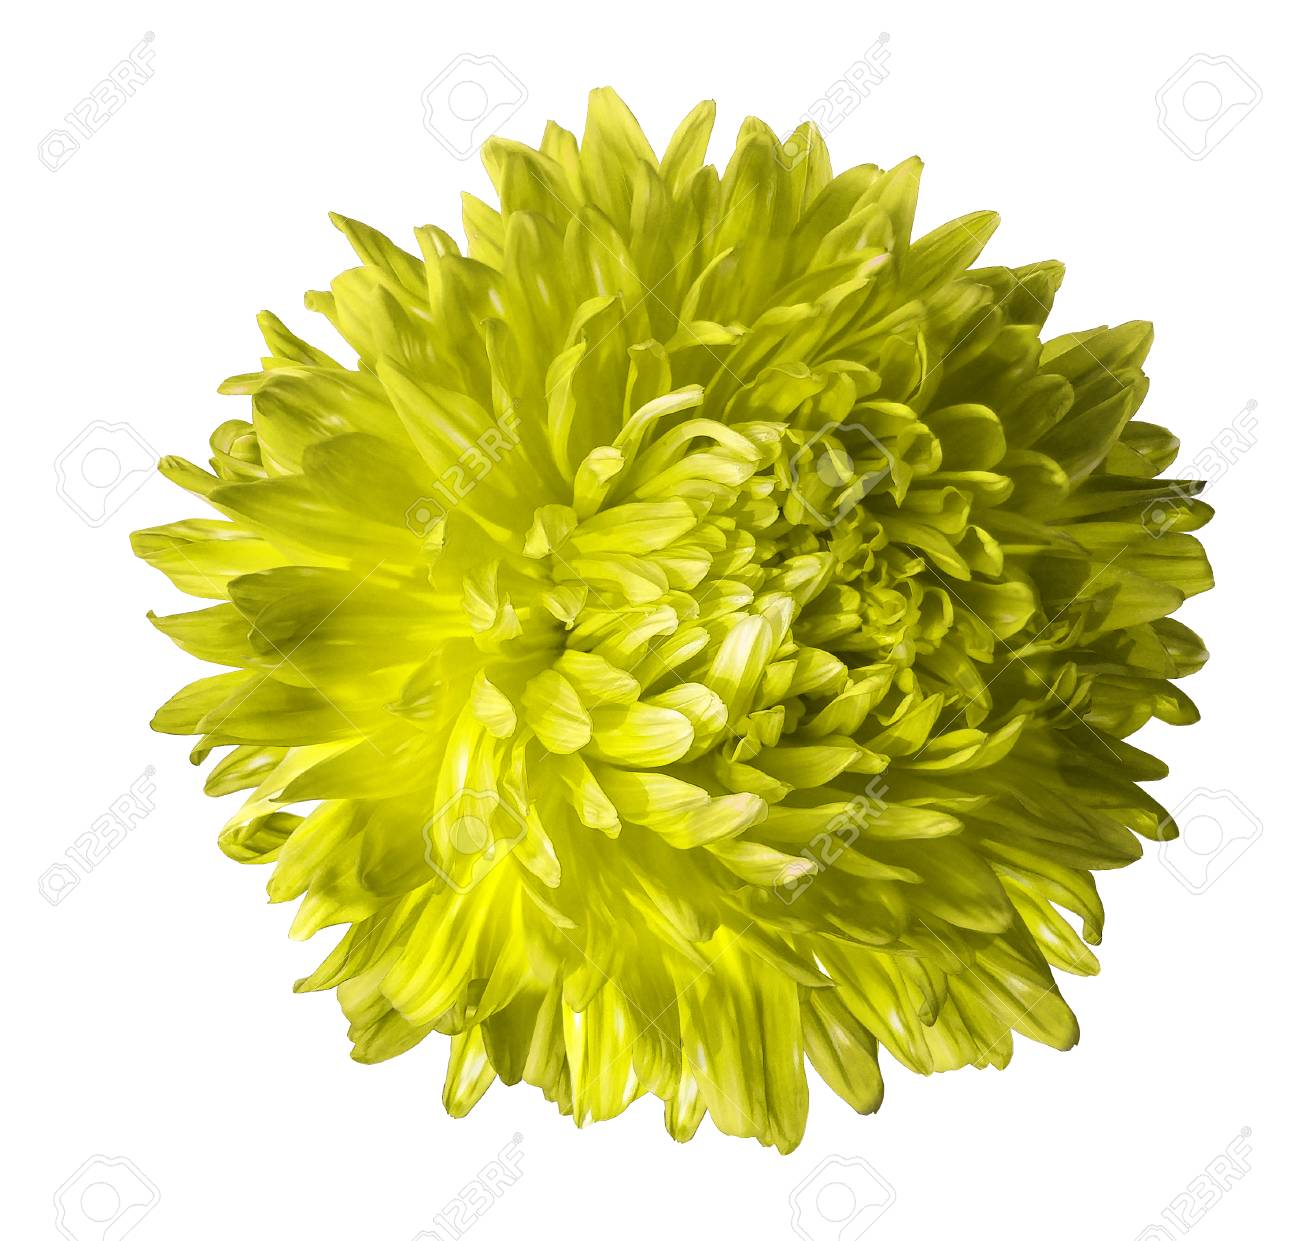 Yellow Aster Flower Isolated On White Background With Clipping